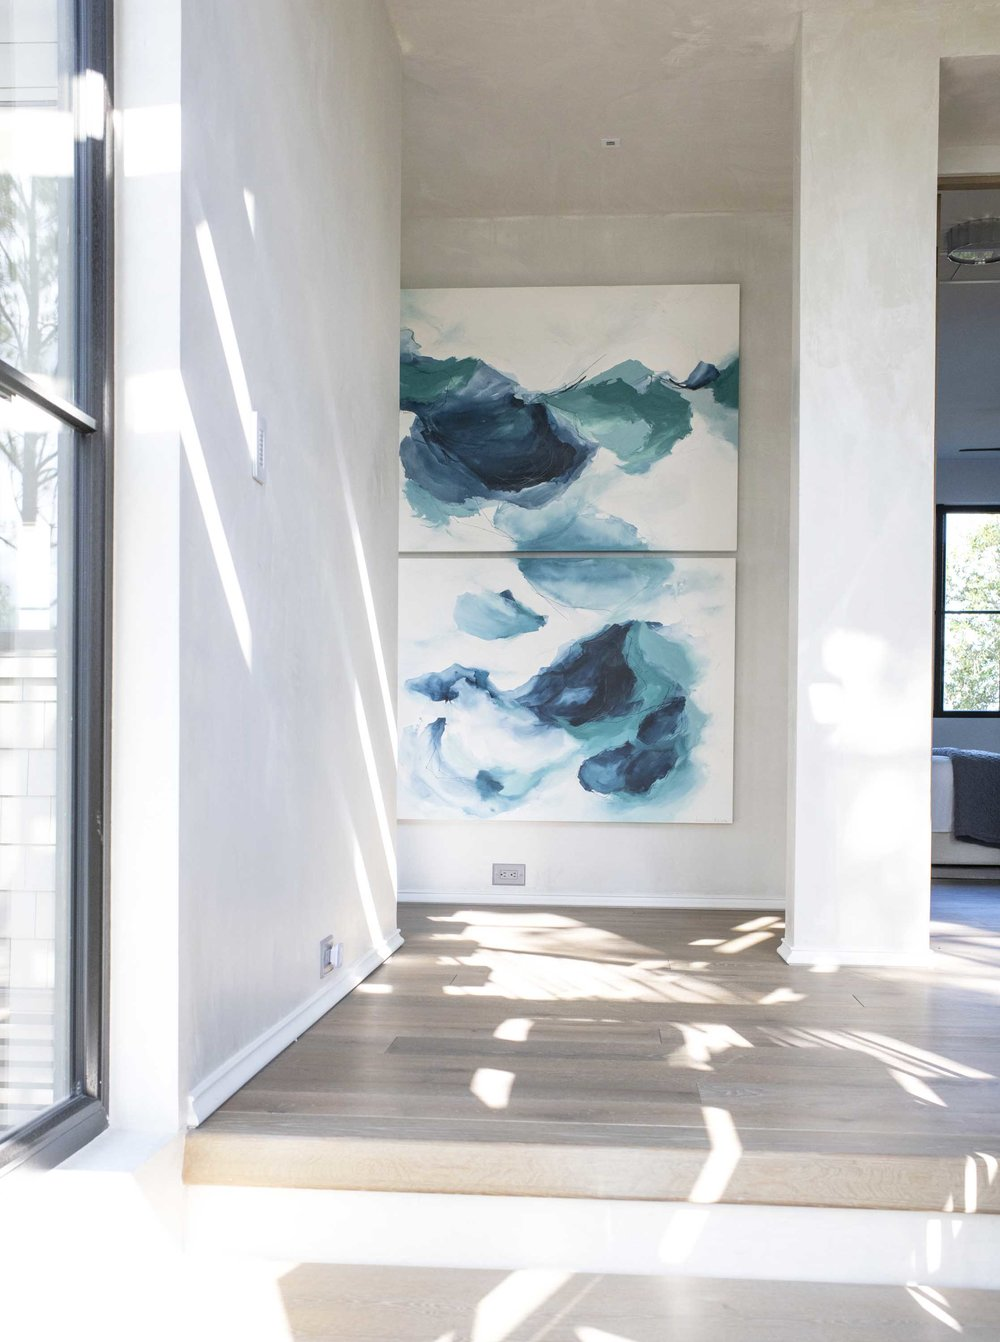 Abstract-contemporary-large-statement-painting-blue-aqua-teal.jpg